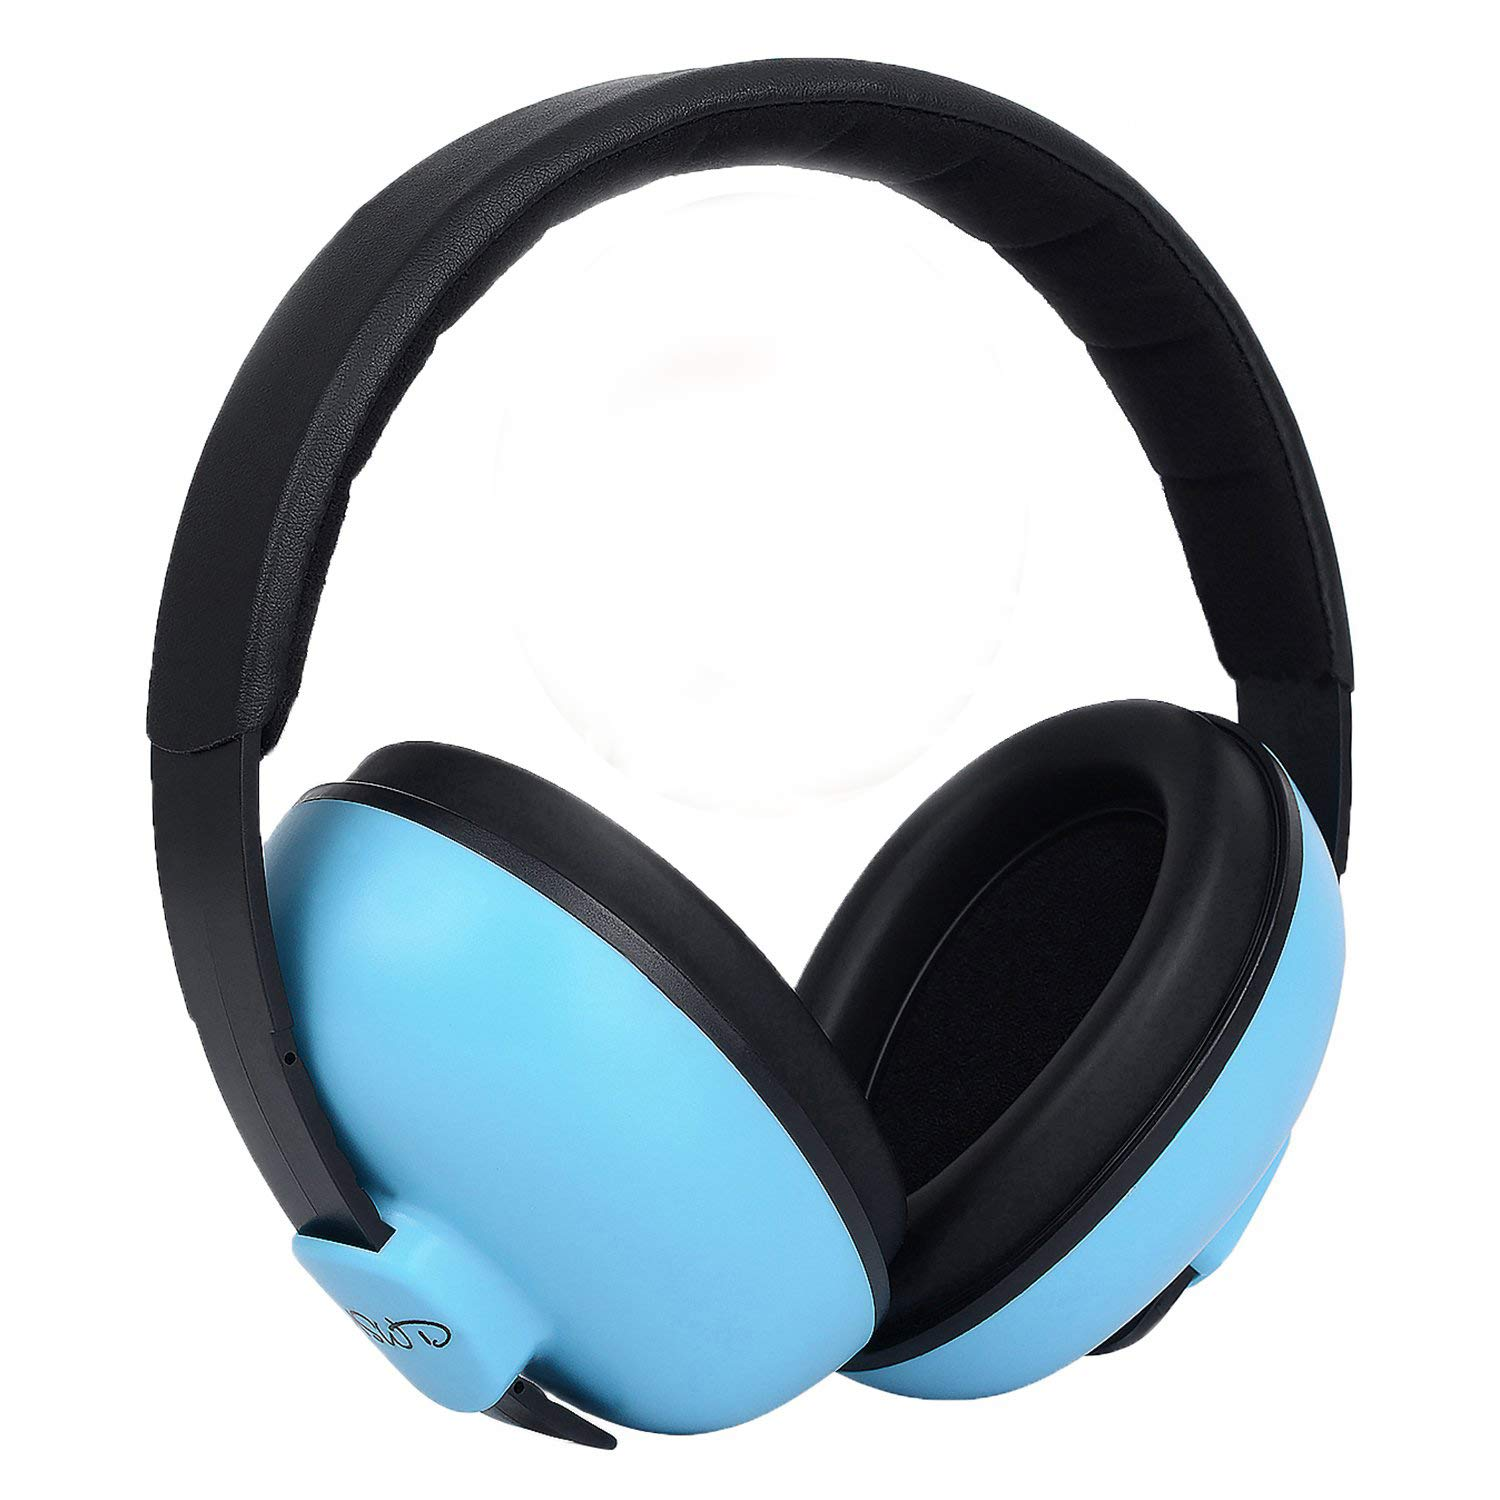 Baby Headphones Safety Ear Muffs Noise Reduction for Newborn Infant Autism Kids Toddlers Sound Cancelling Headphones for Sleeping Studying Airplane Concerts Movie Theater Fireworks, Blue by ILOVEUS (Image #2)